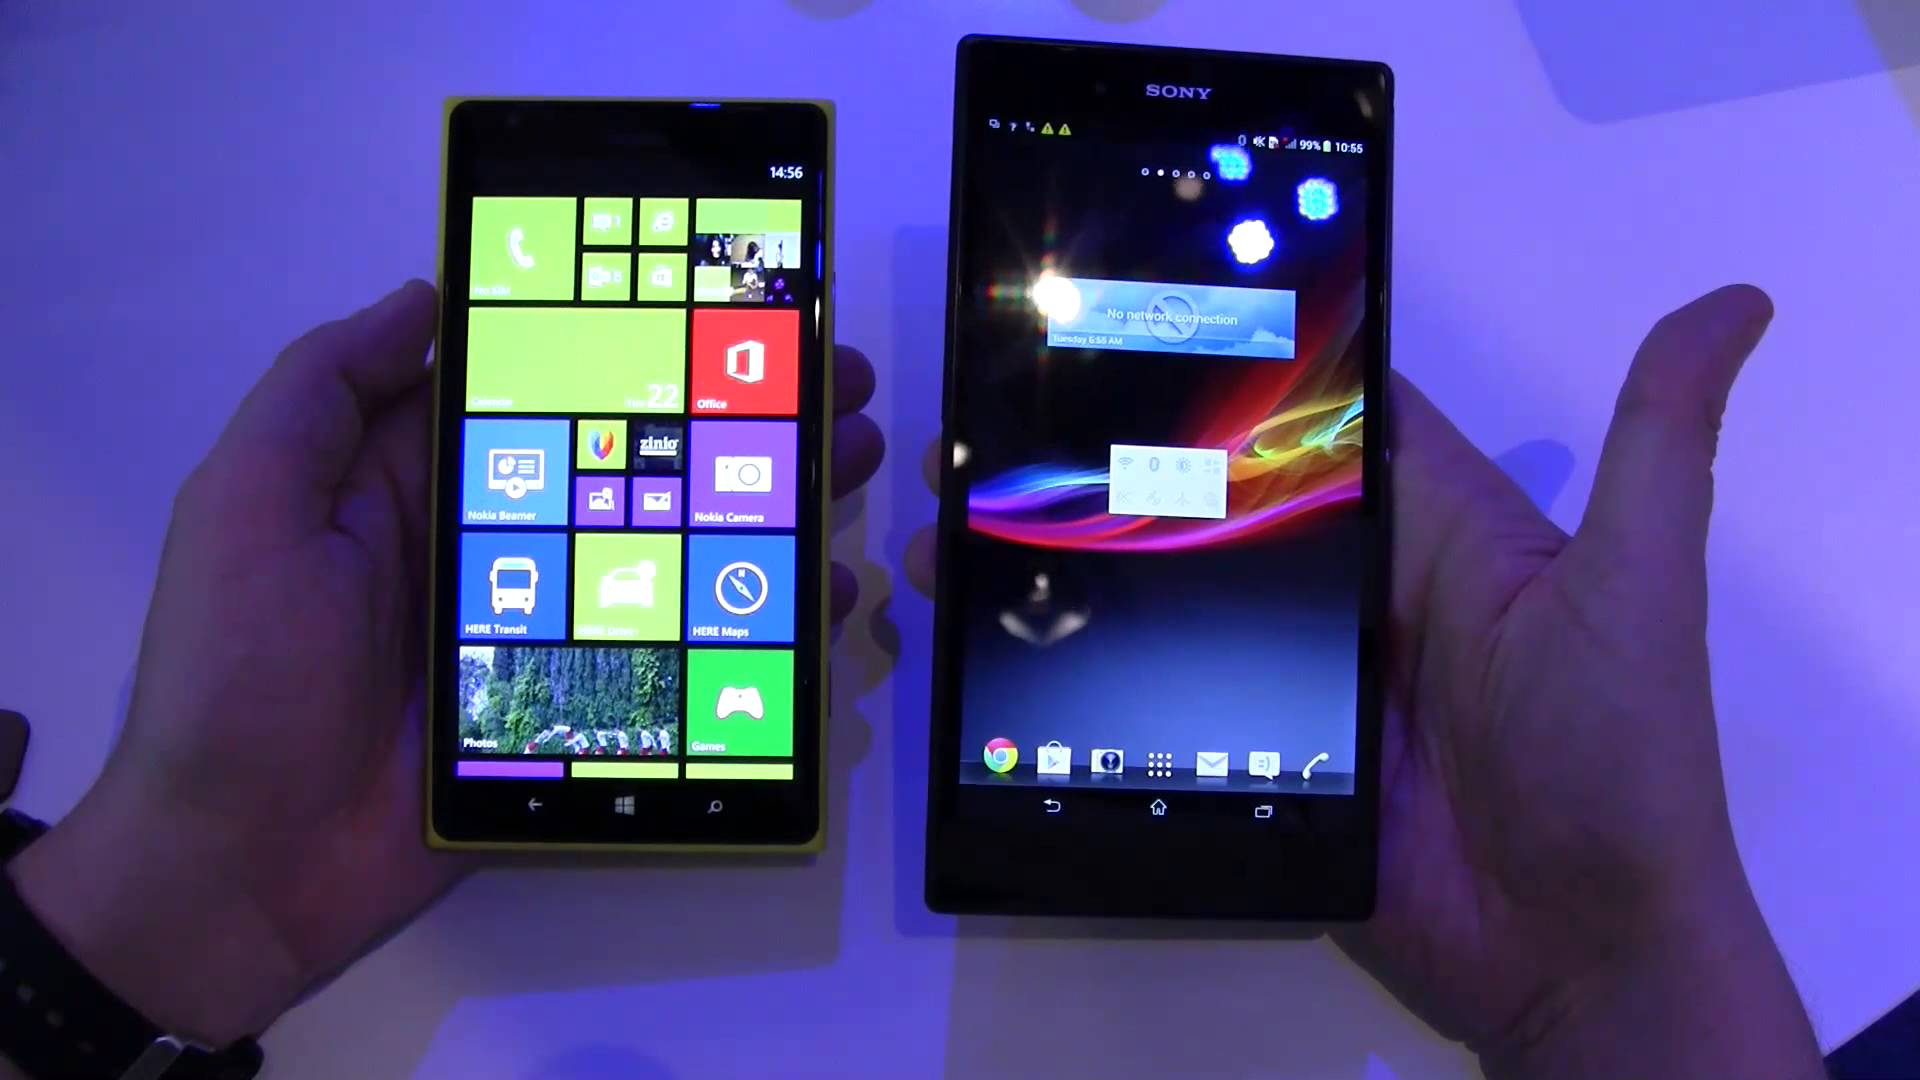 Nokia Lumia 1520 vs Sony Xperia Z Ultra